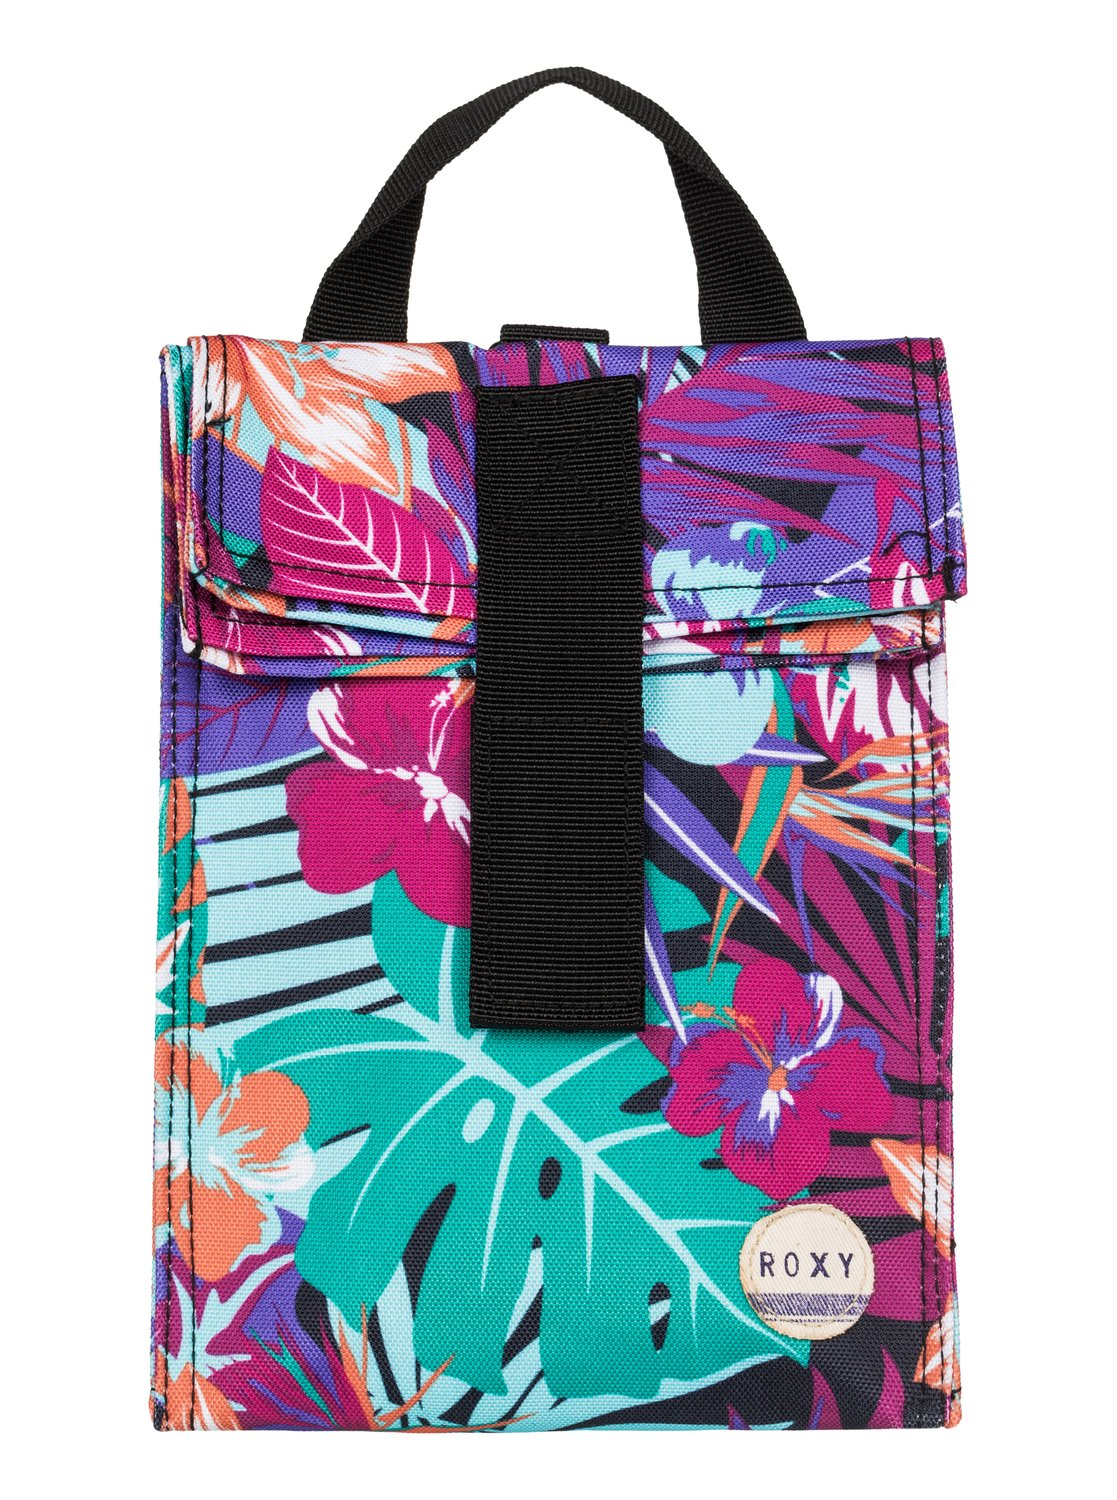 0 What S For Lunch Bag 2153130103 Roxy